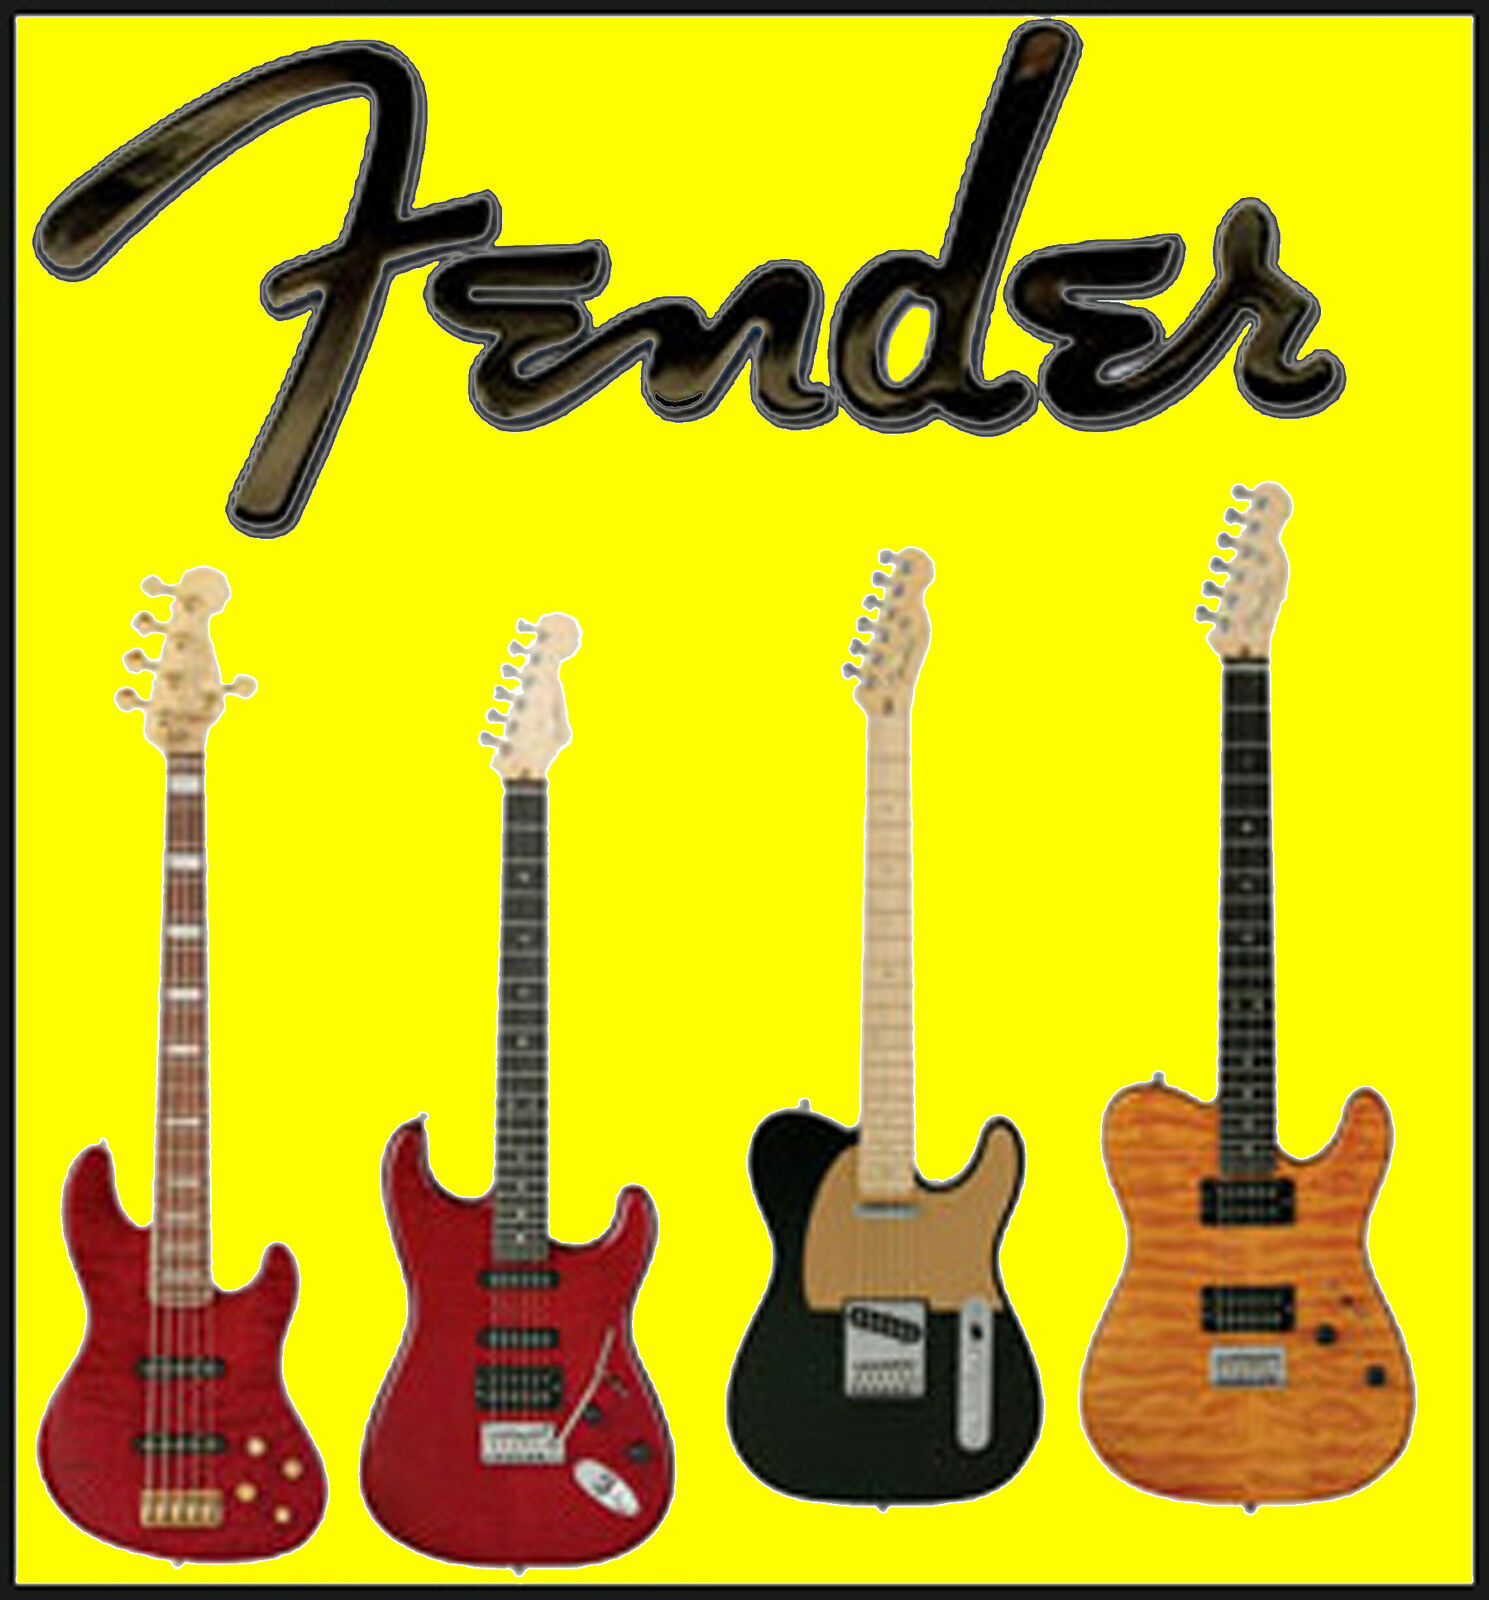 HUGE SET FENDER MANUALS SCHEMATICS Guitar AMPs Wiring DIAGRAMS BEST &  FASTEST CD 1 of 2FREE Shipping HUGE SET FENDER MANUALS SCHEMATICS Guitar  AMPs Wiring ...